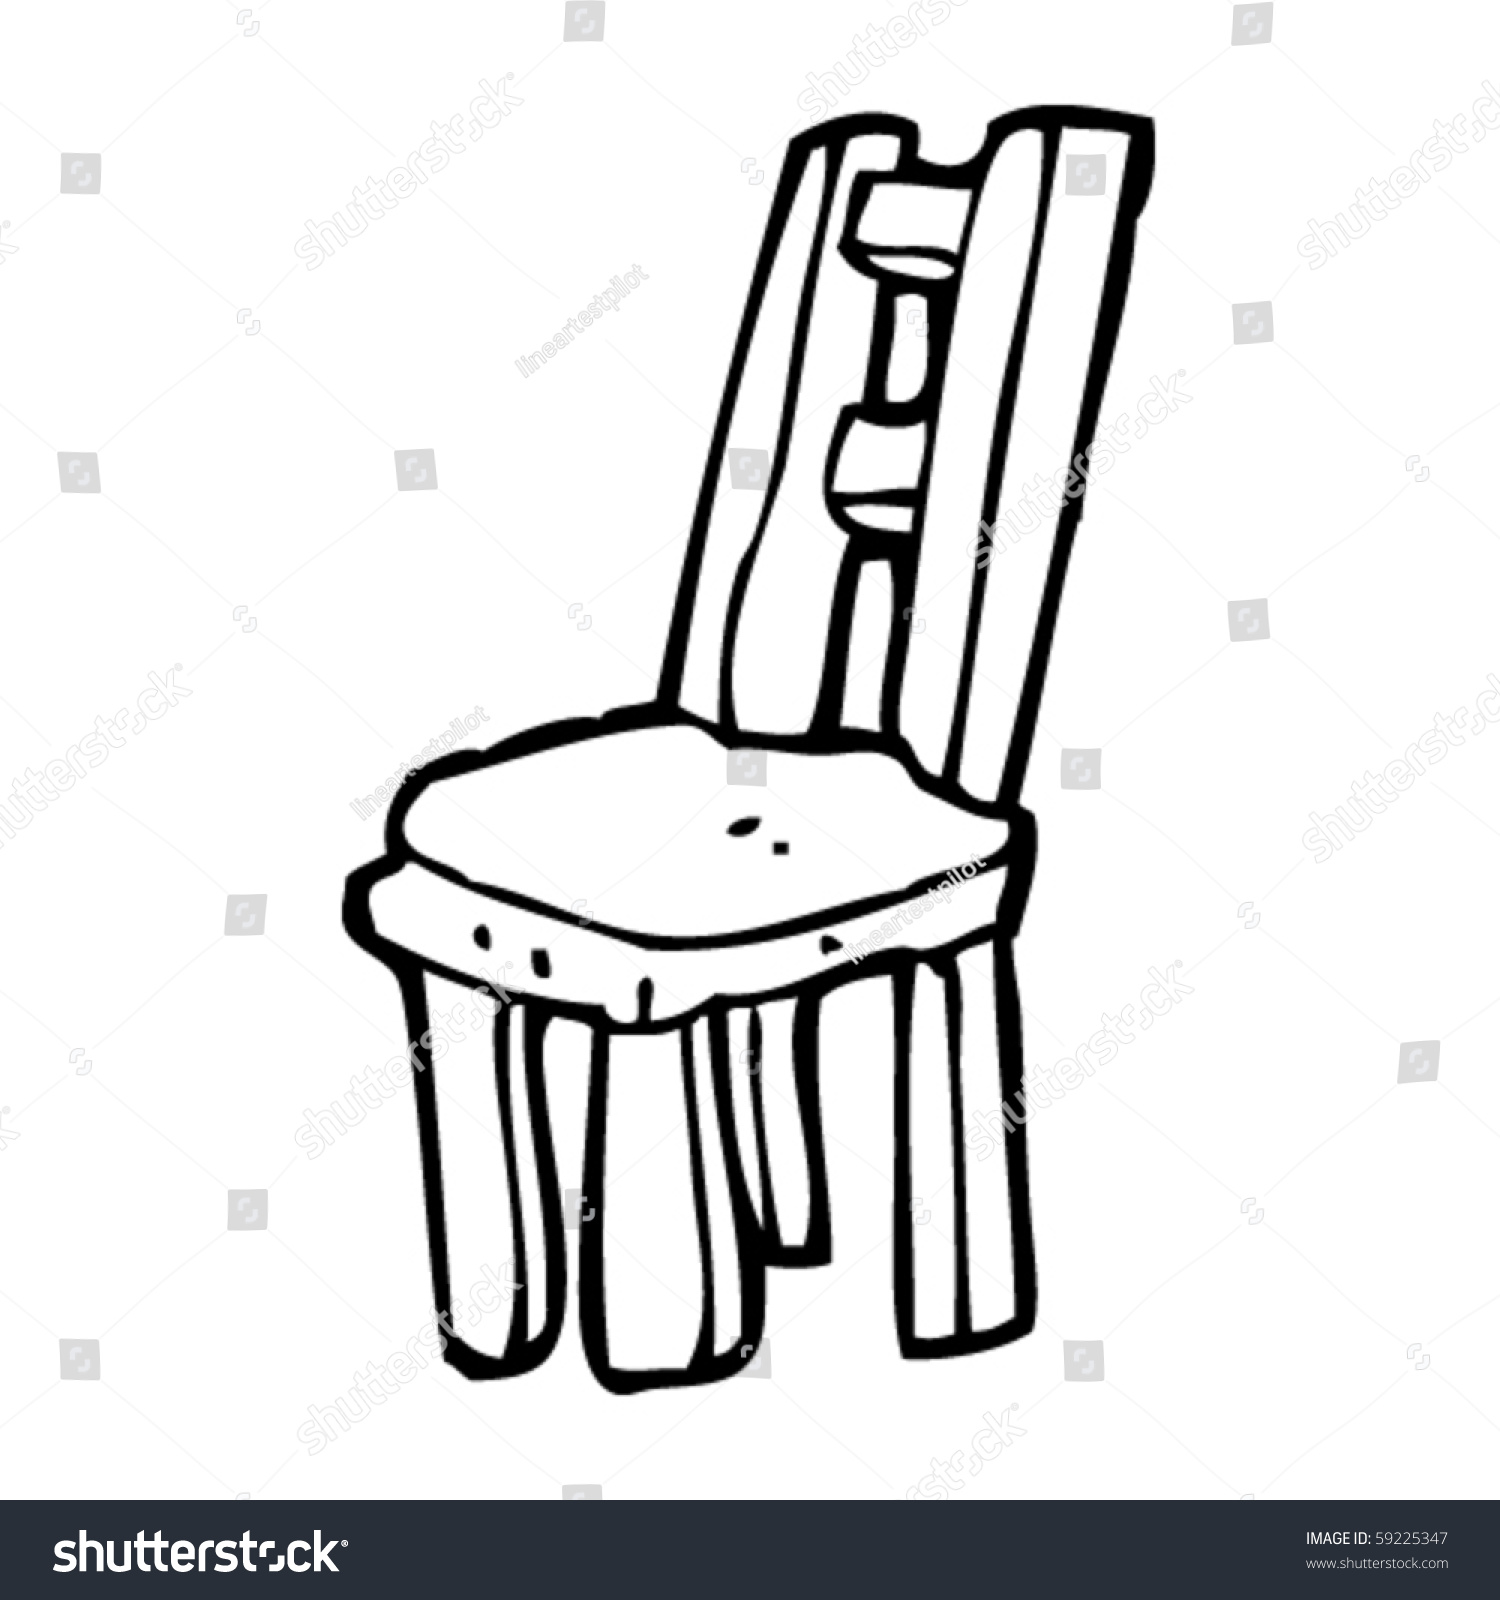 Black and white chair drawing - Chair Drawing